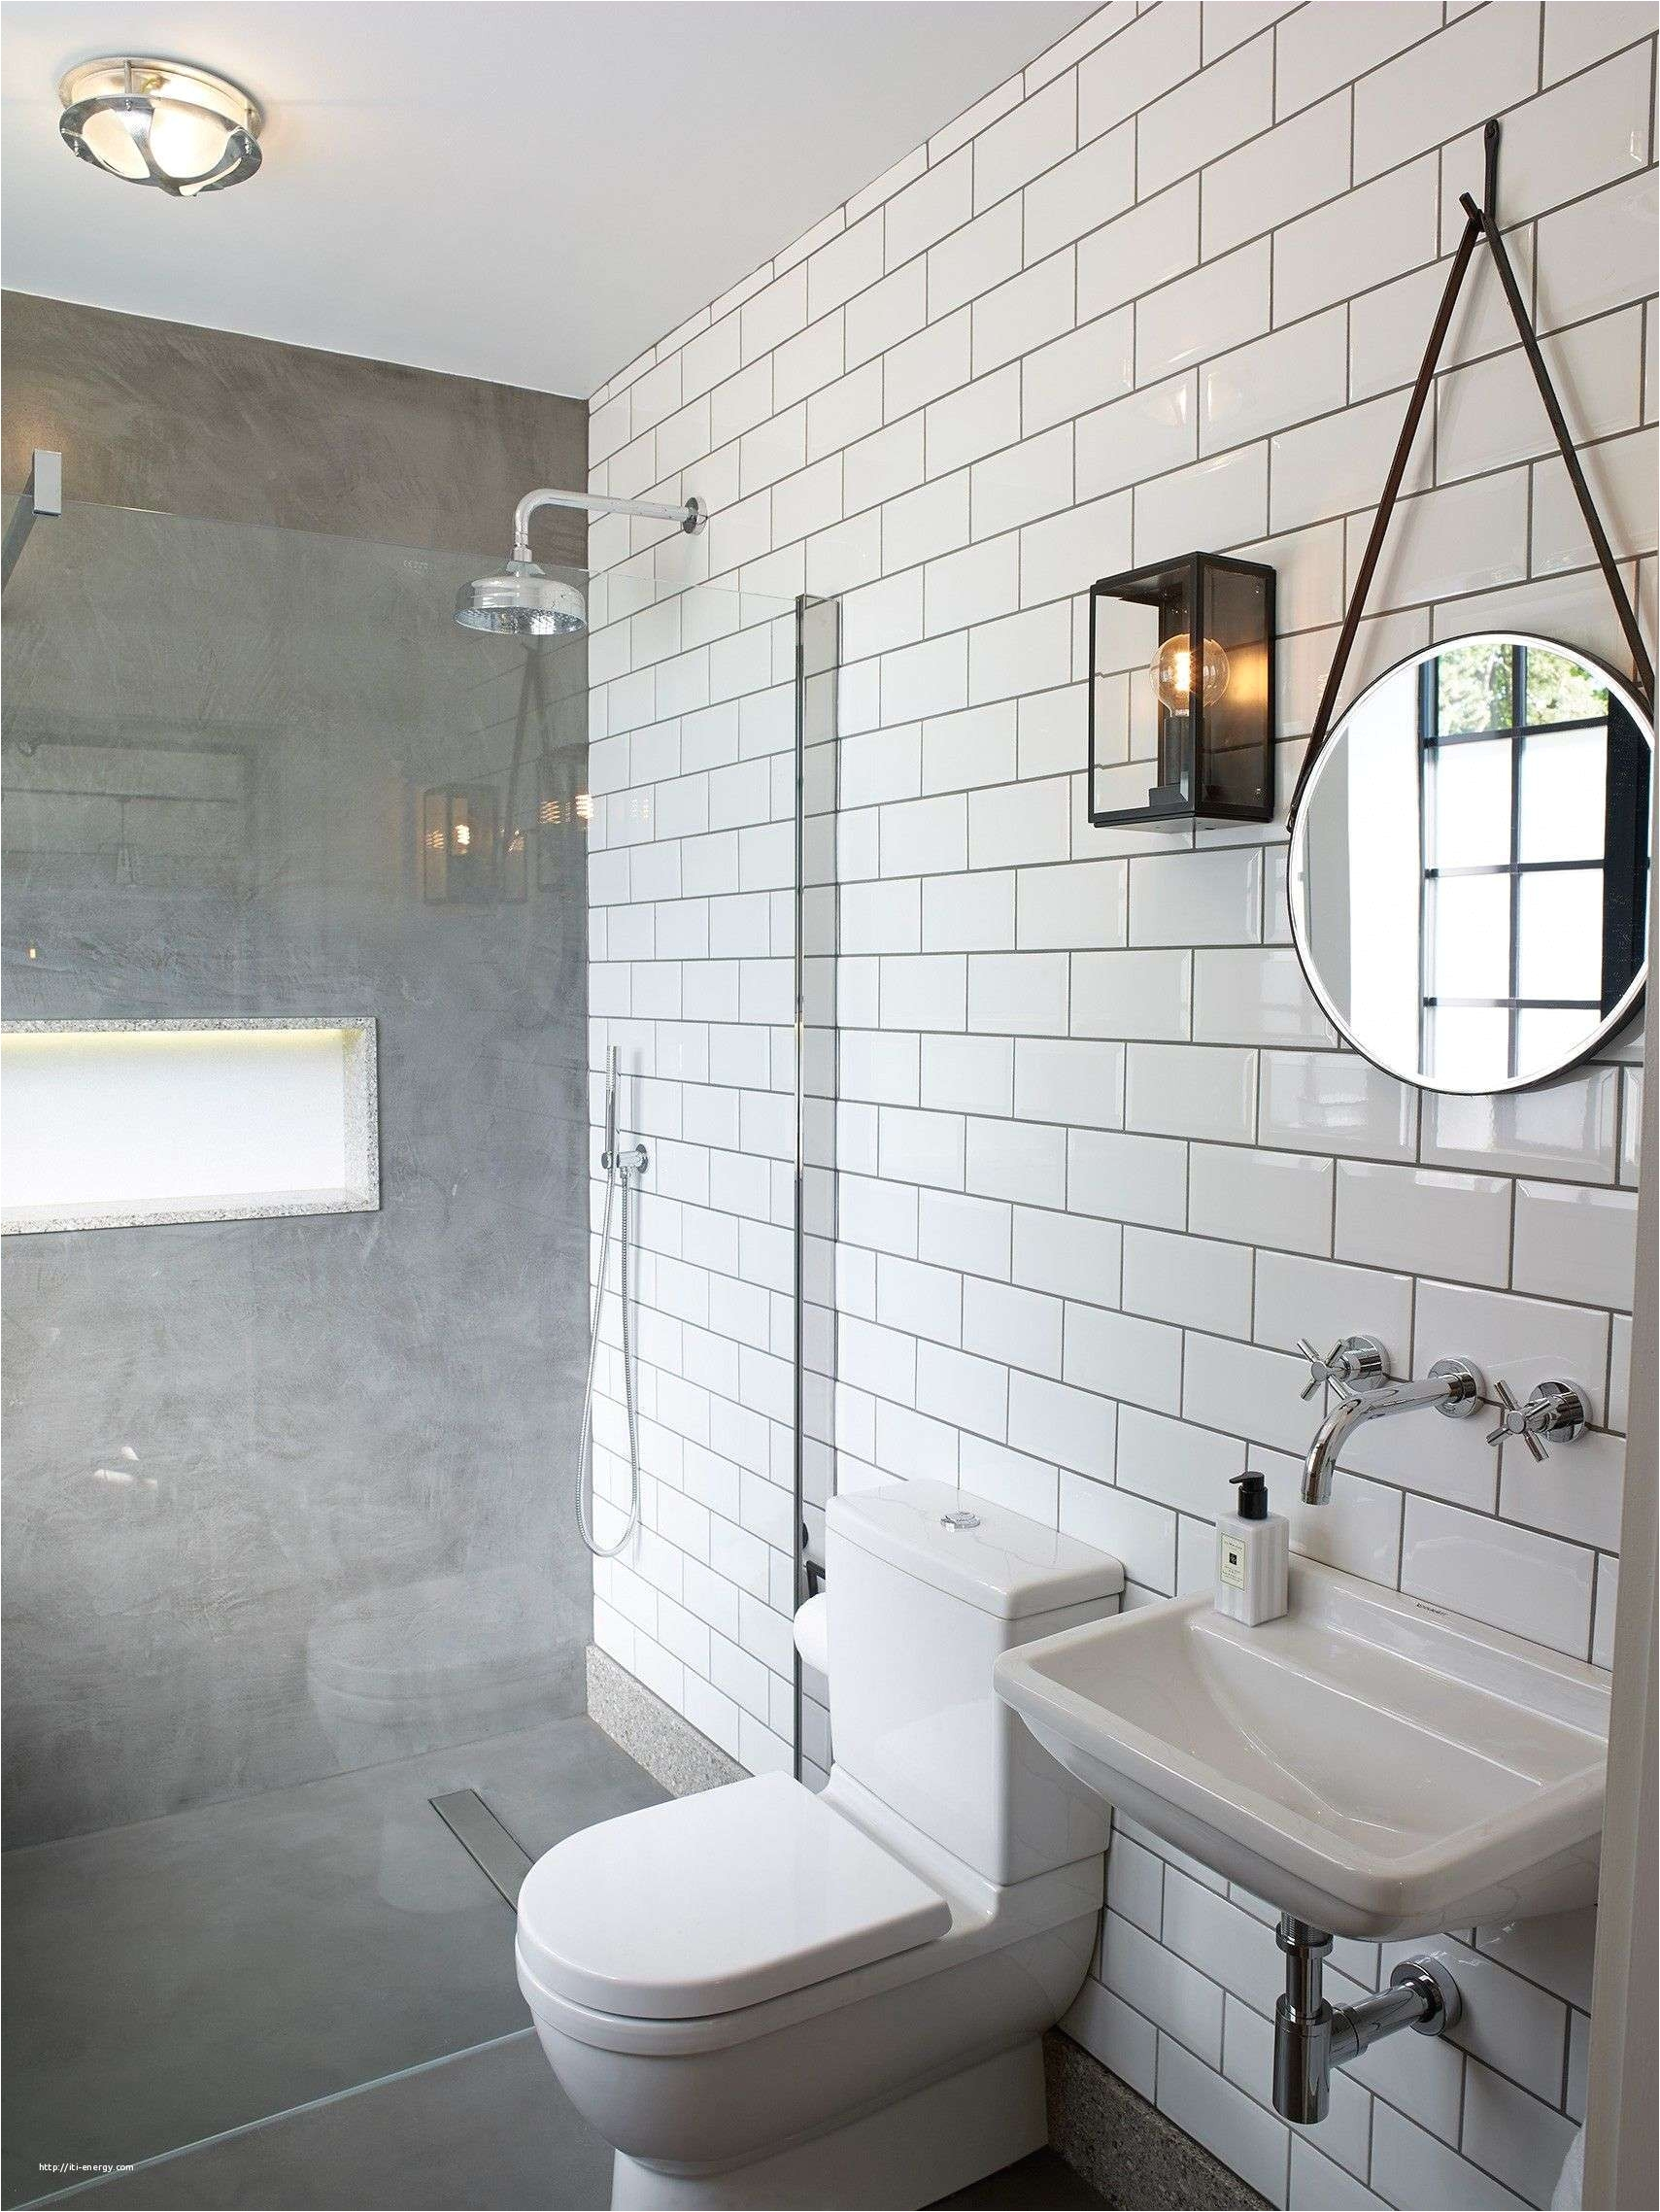 shower bathtub new bathtub shower tile ideas inspirational awesome bathroom picture